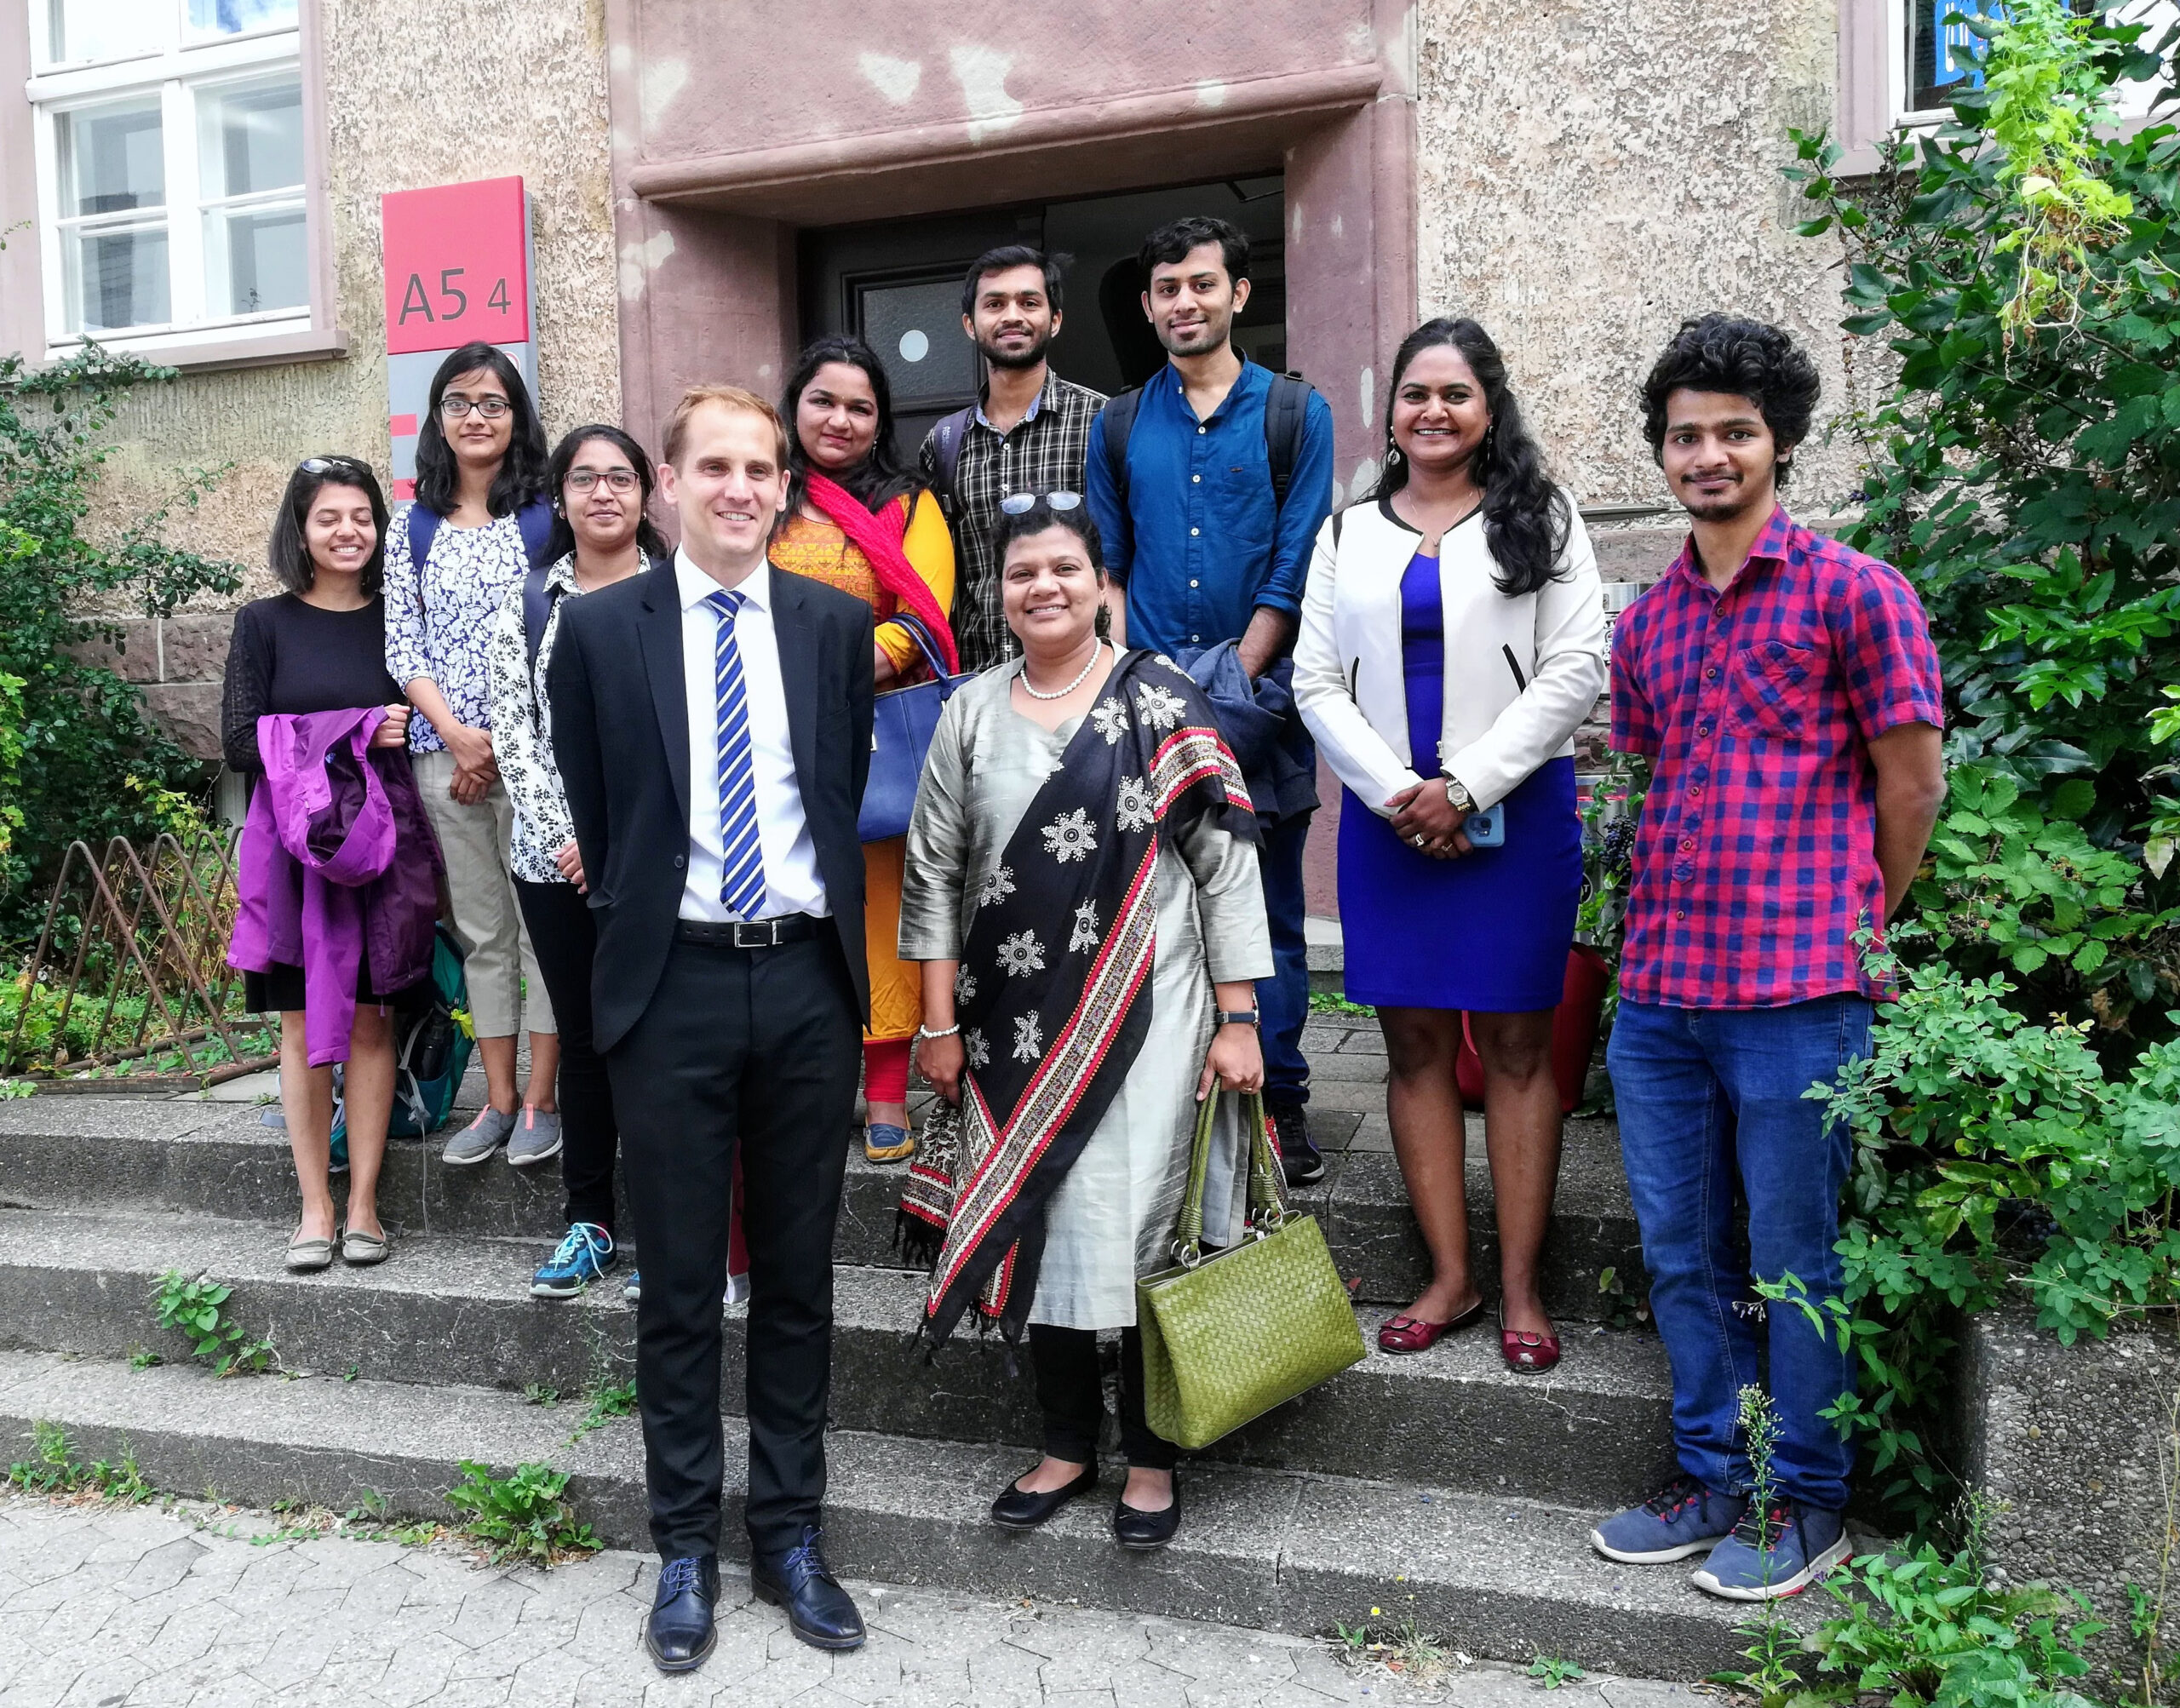 Visit from the Consul General of India, Ms. Pratibha Parkar